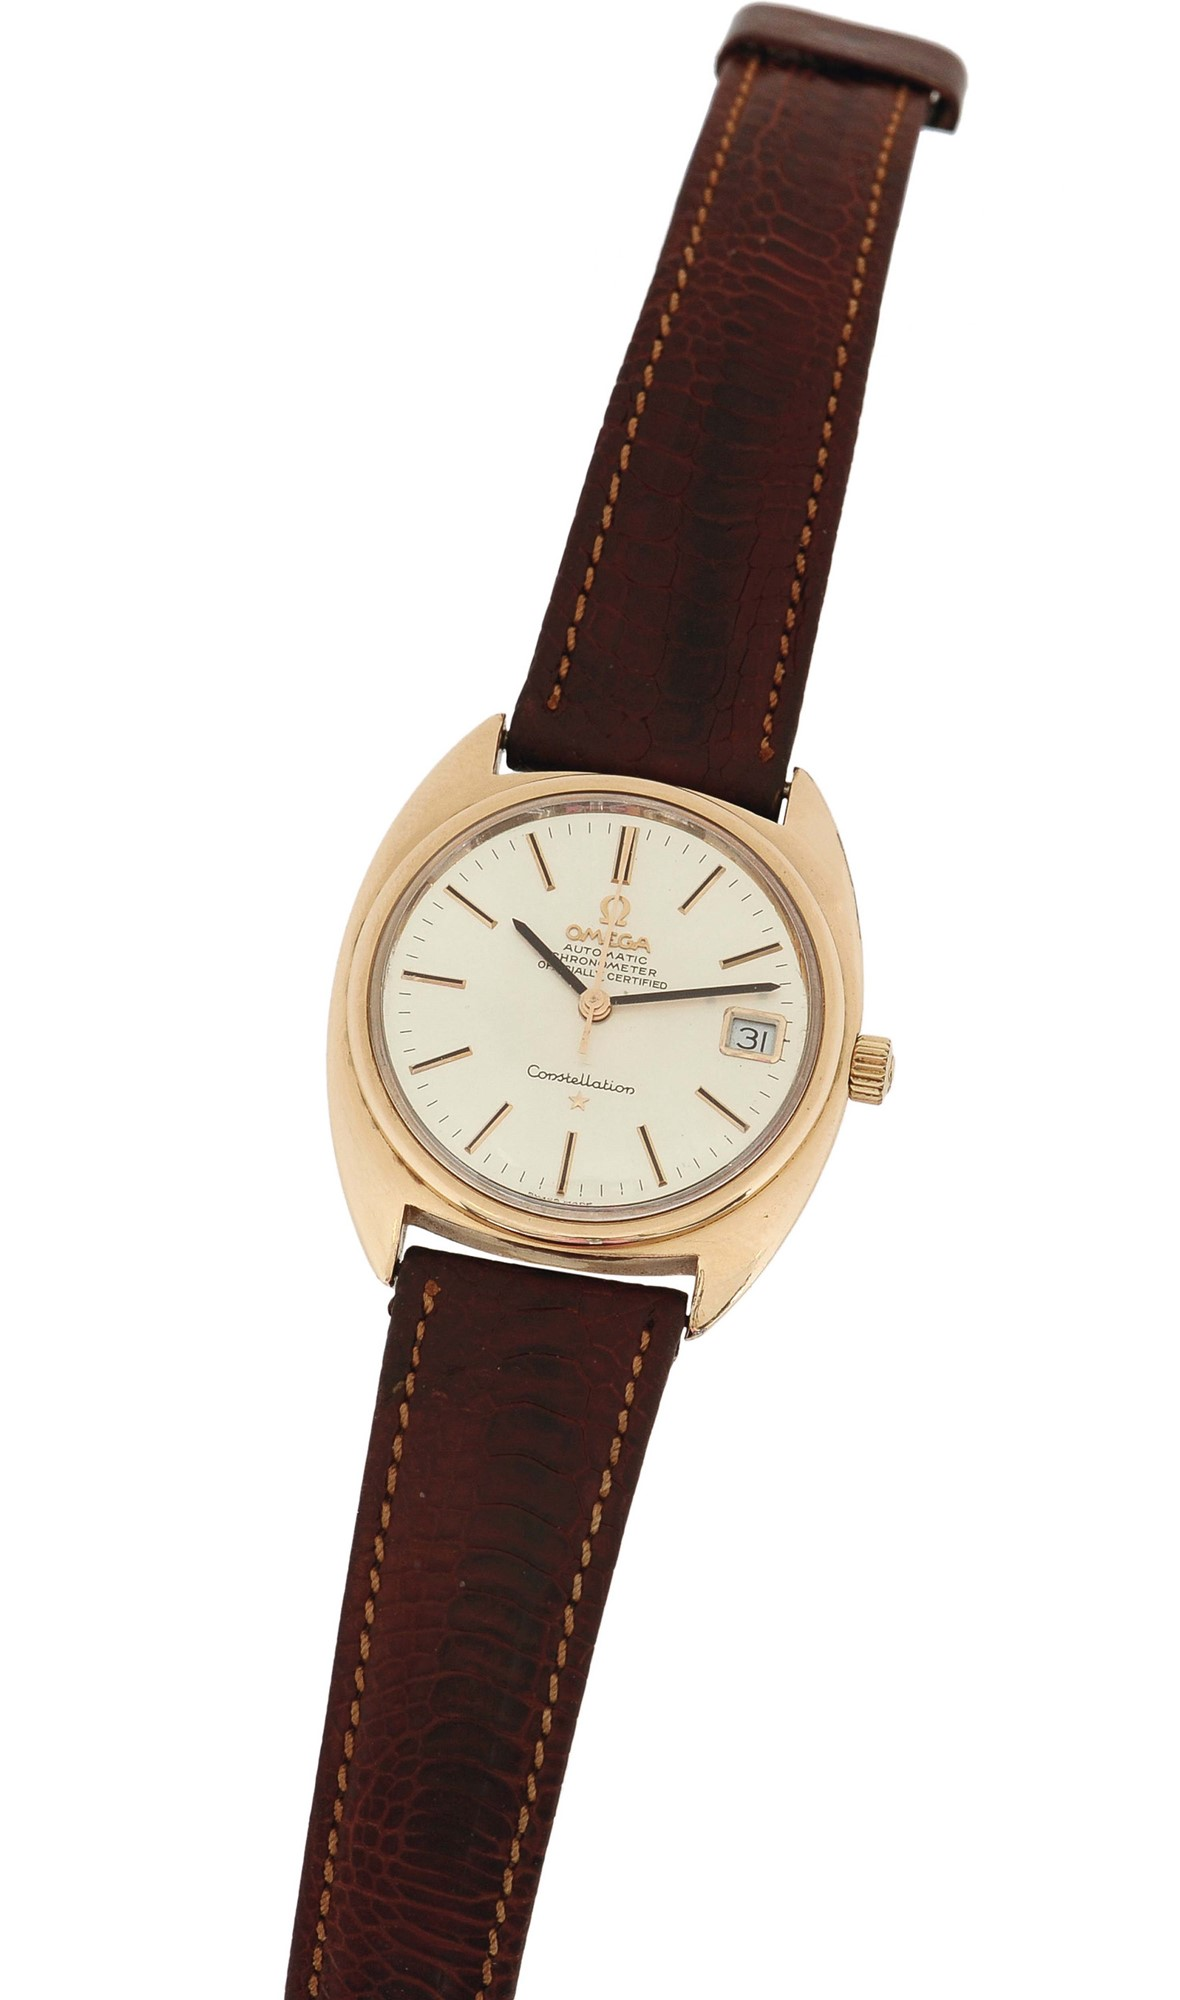 Omega Constellation Automatic Chronometer Officially Certified